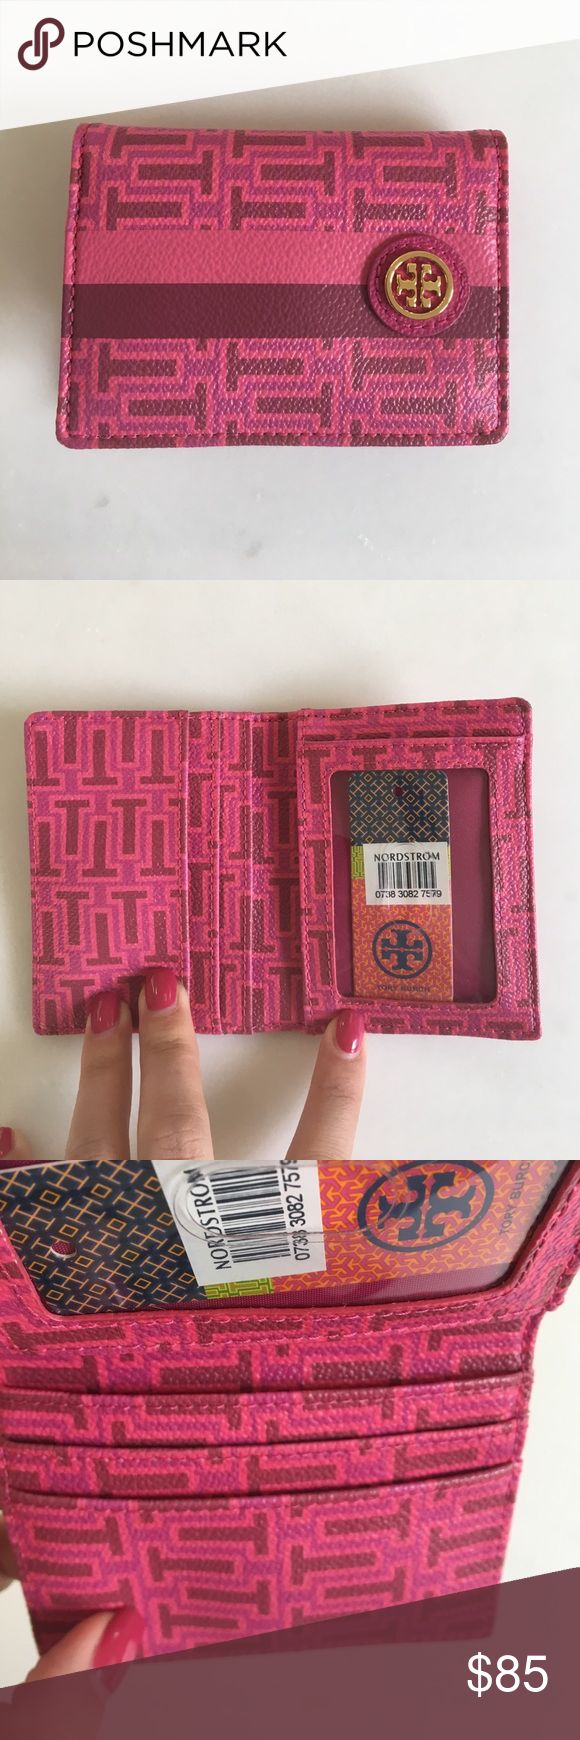 Tory burch wallet Never used! Card holder. Holds 4 cards. Onepocket used for cash if folded! From Nordstrom! Tory Burch Accessories Key & Card Holders